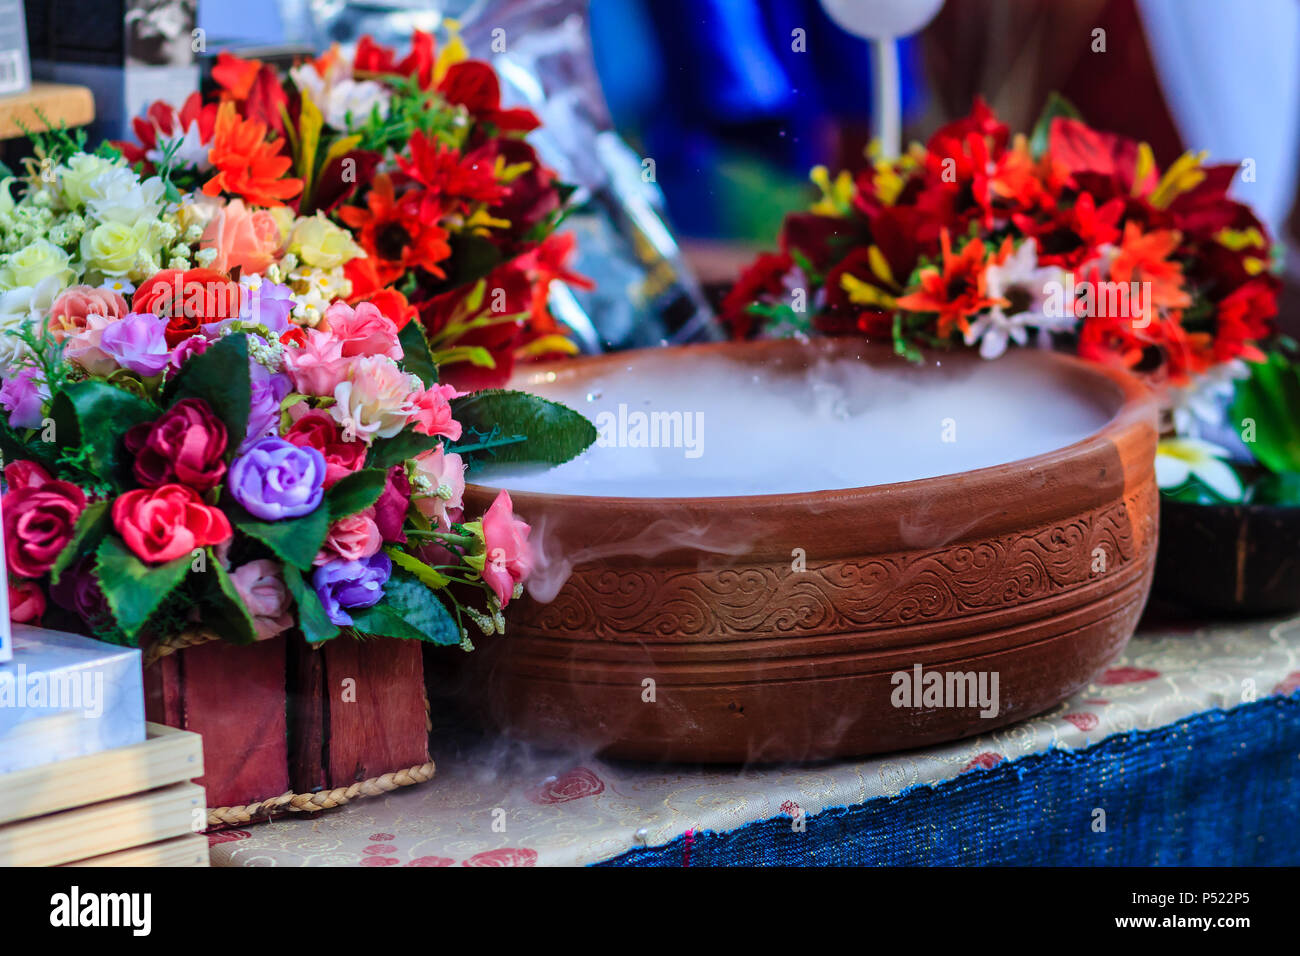 Beautiful Decoration In Spa Shop With Artificial Flowers And Dry Ice Smoke In The Ceramic Bowl Stock Photo Alamy